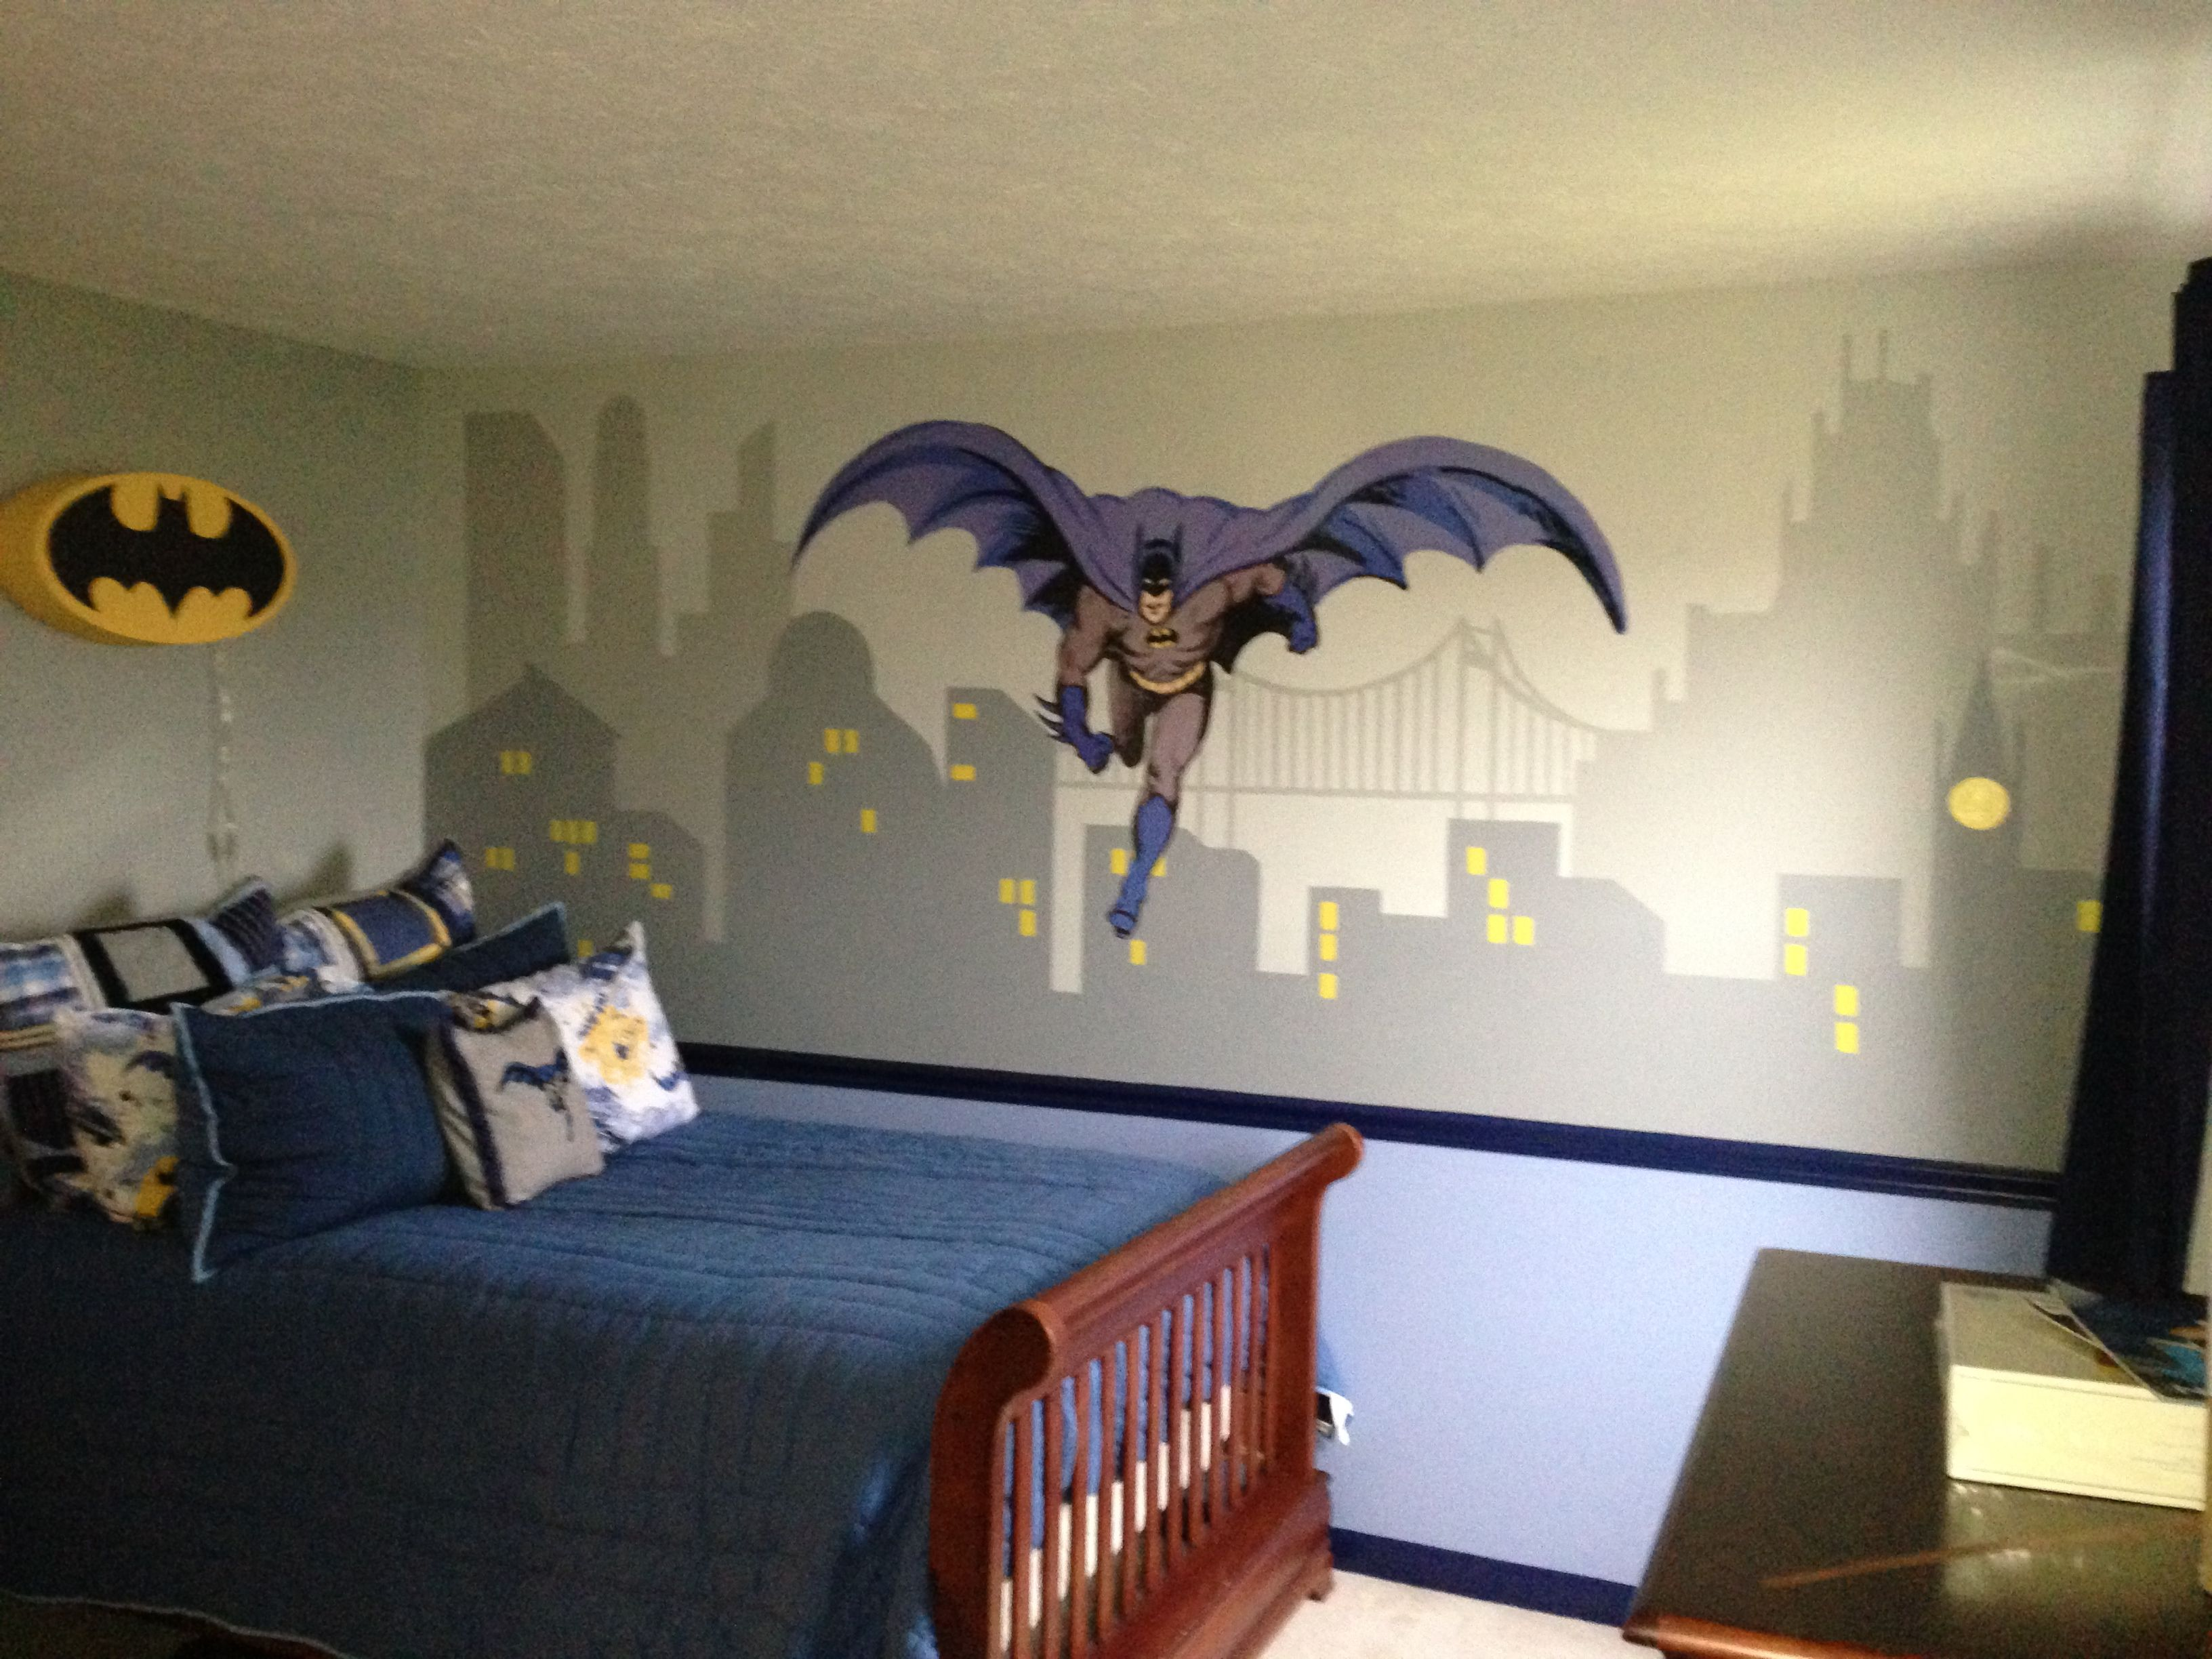 Pottery barn kids- batman theme bedroom | Batman bedroom ...